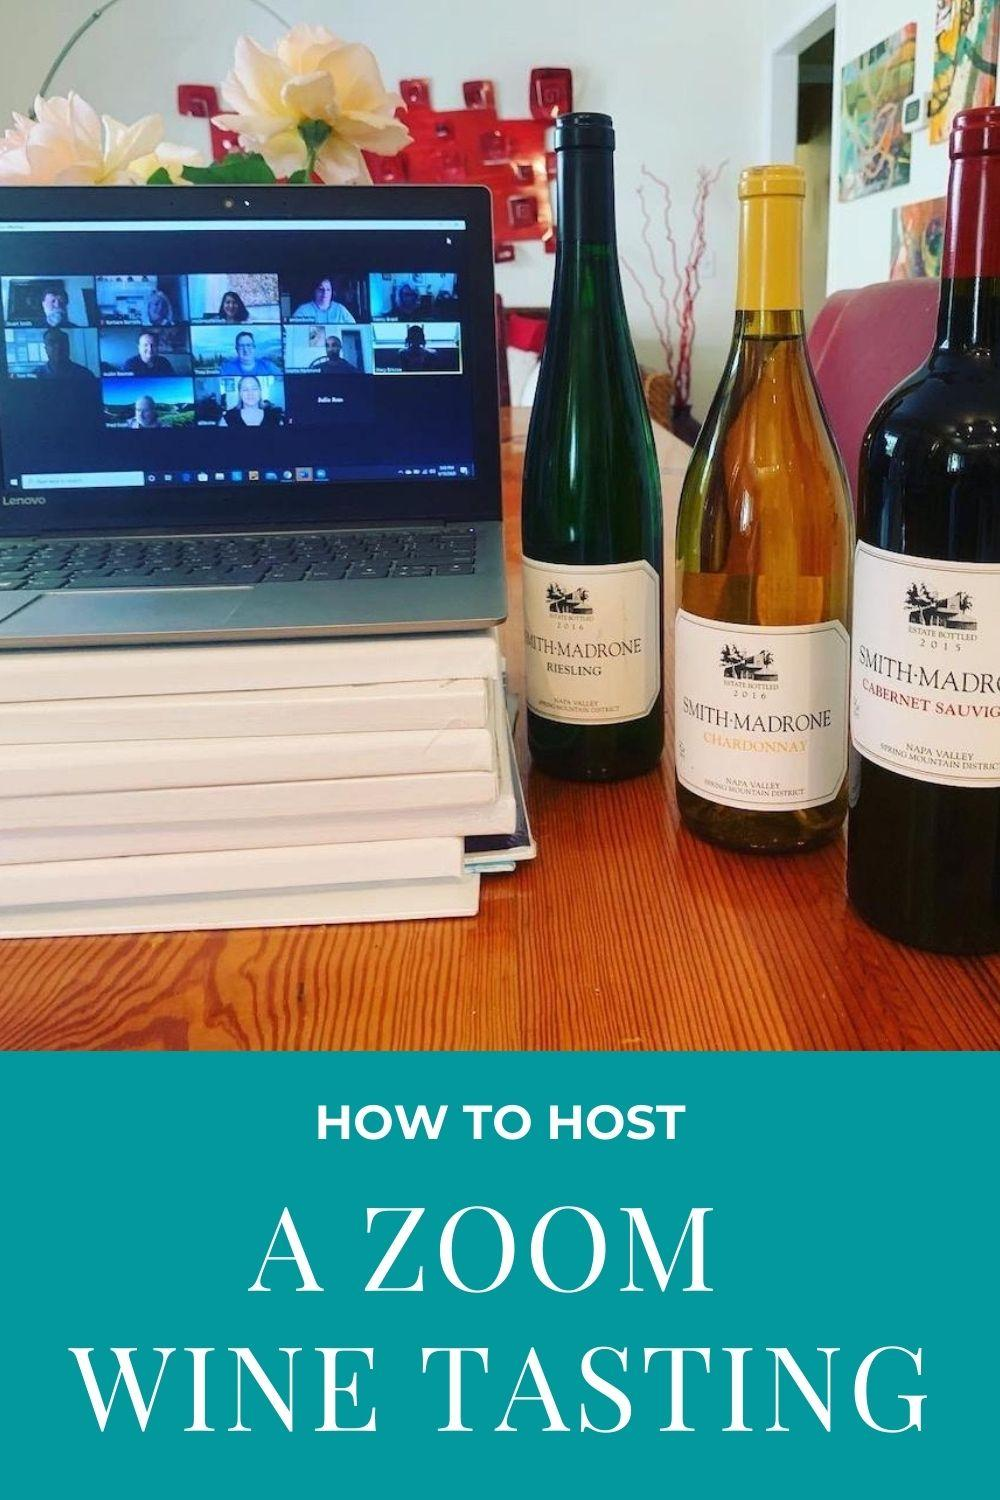 how to host a zoom wine tasting graphic